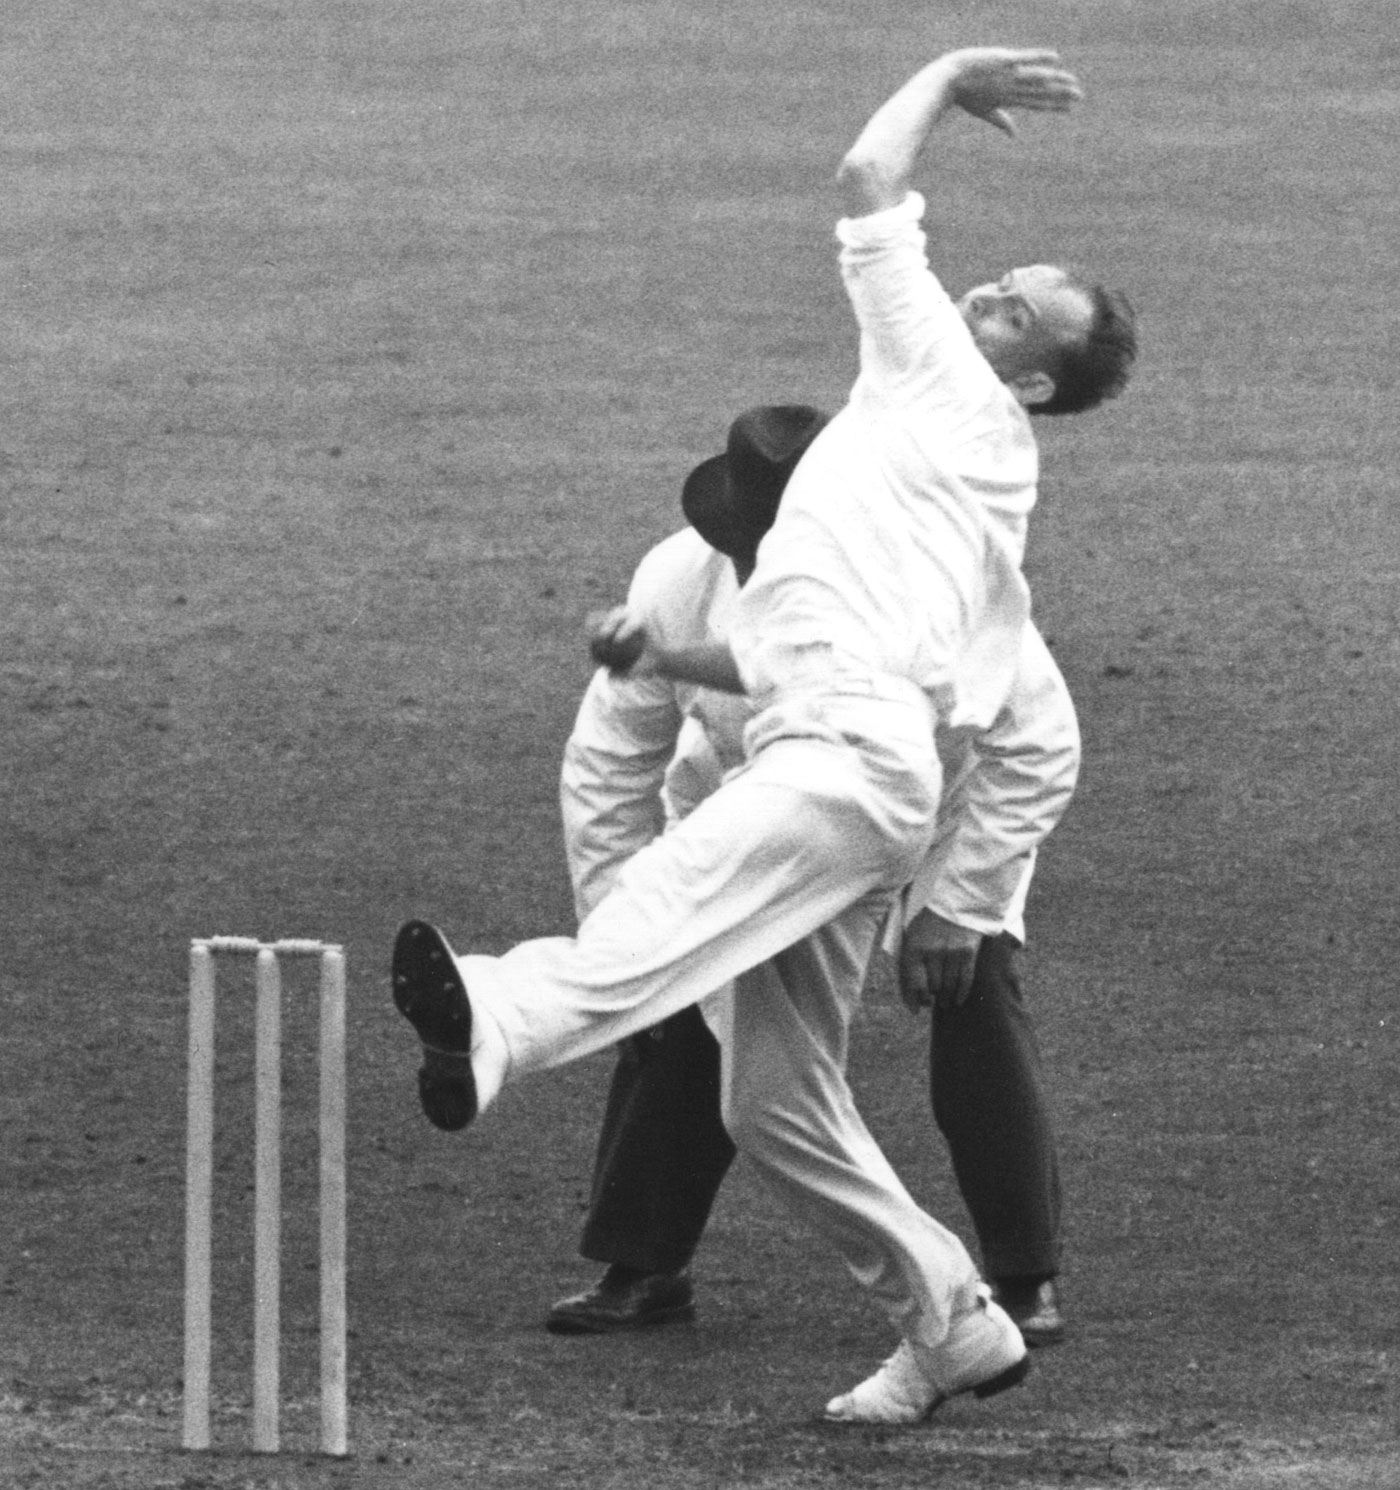 The Typhoon: Frank Tyson began the demolition job with two early wickets in the second innings